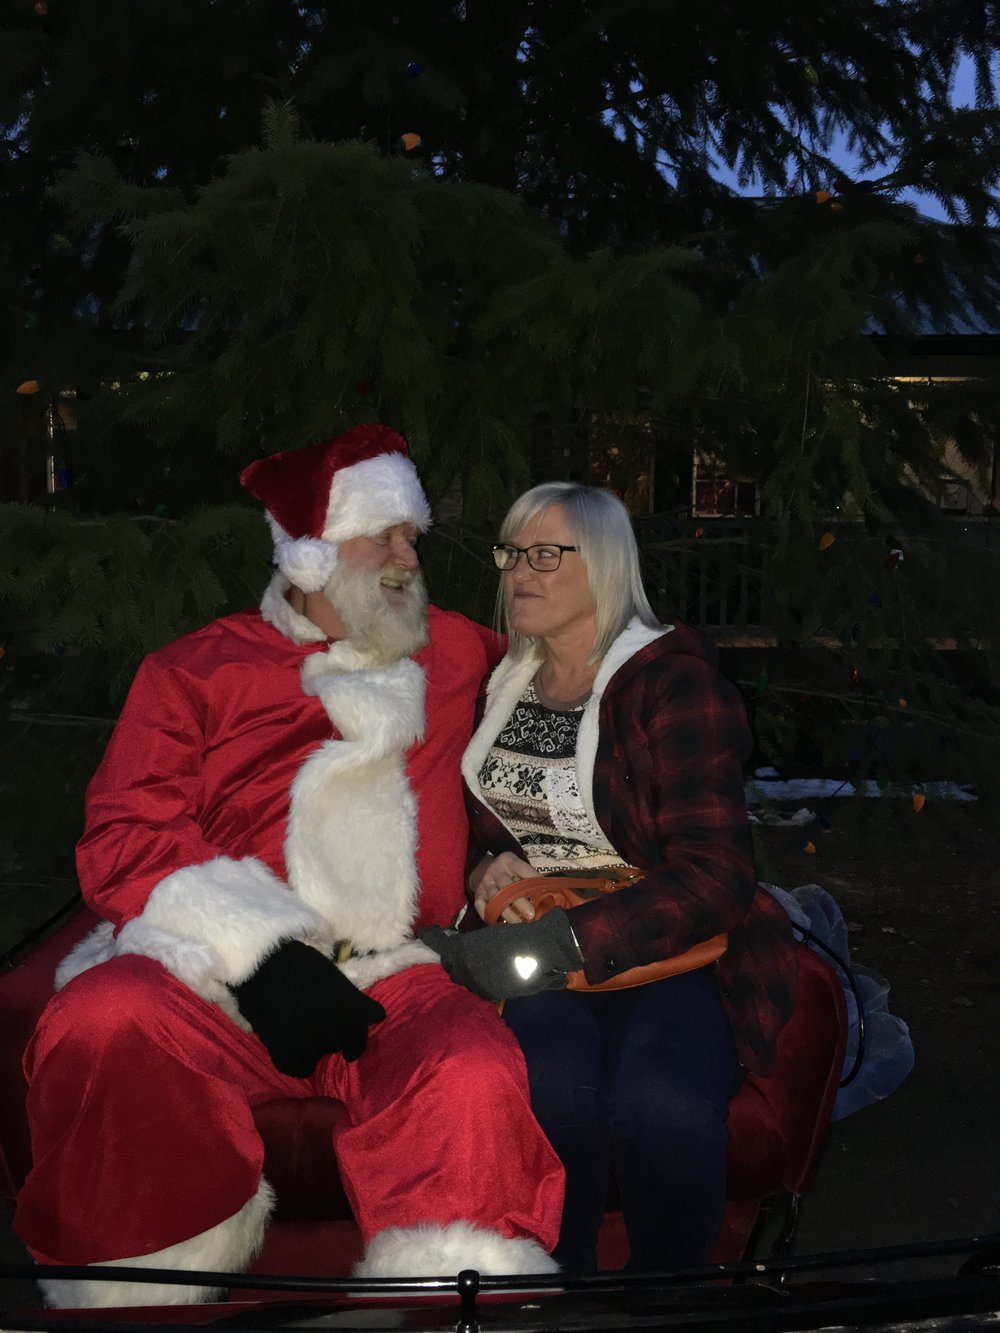 """At """"A Small Town Christmas"""" event in Ione. You're not the real Santa! You smell like beef and cheese!"""